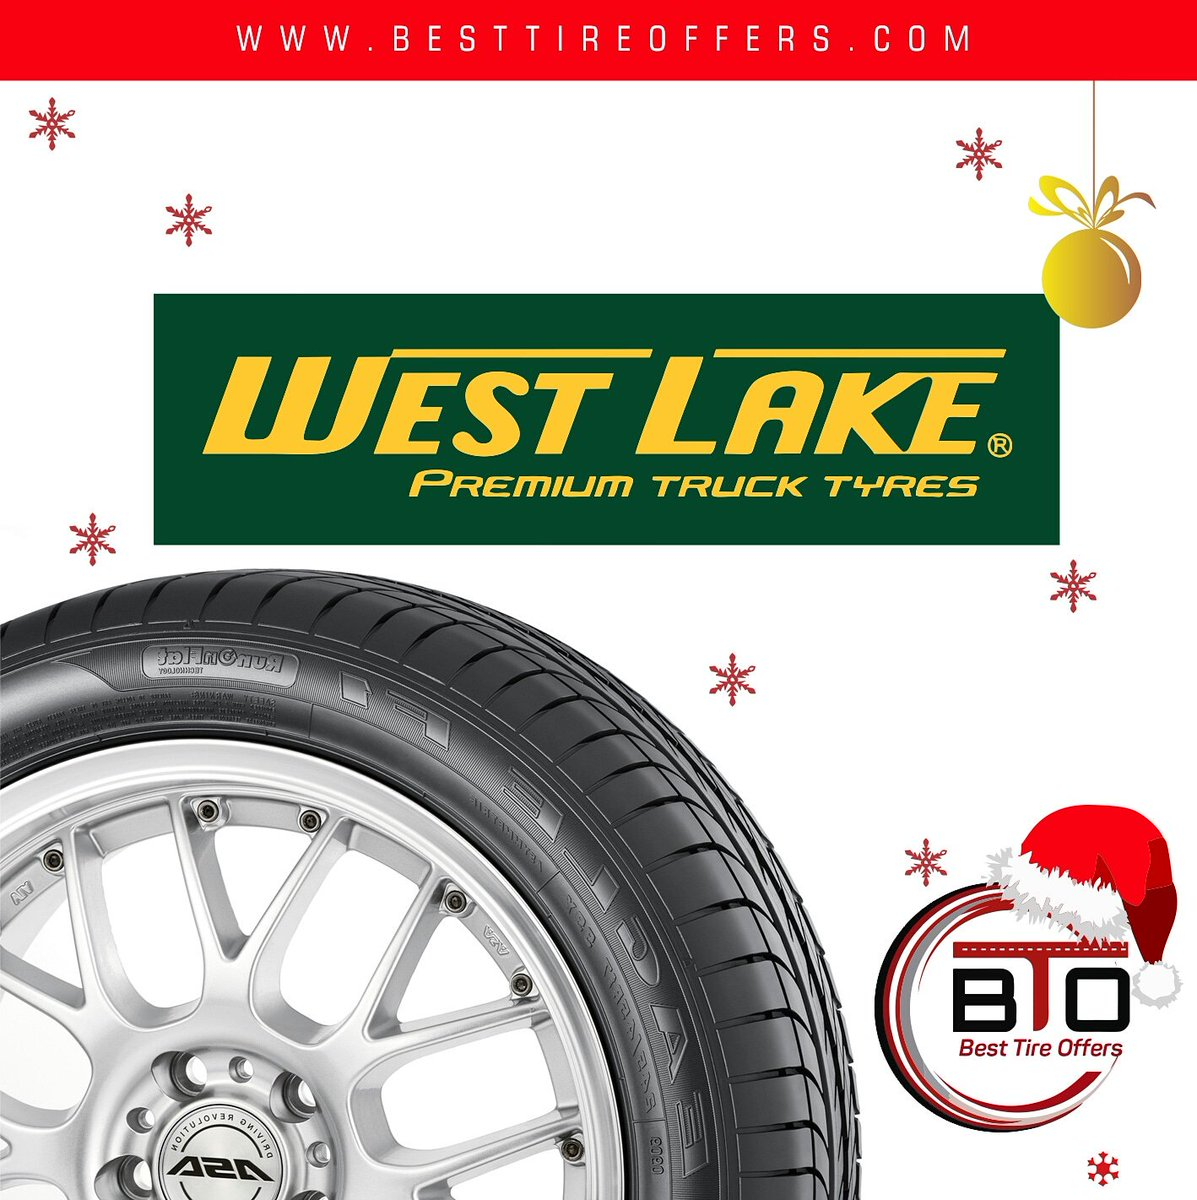 Best Tire Brands 2020.Best Tire Offers On Twitter From This Brand You Can Find